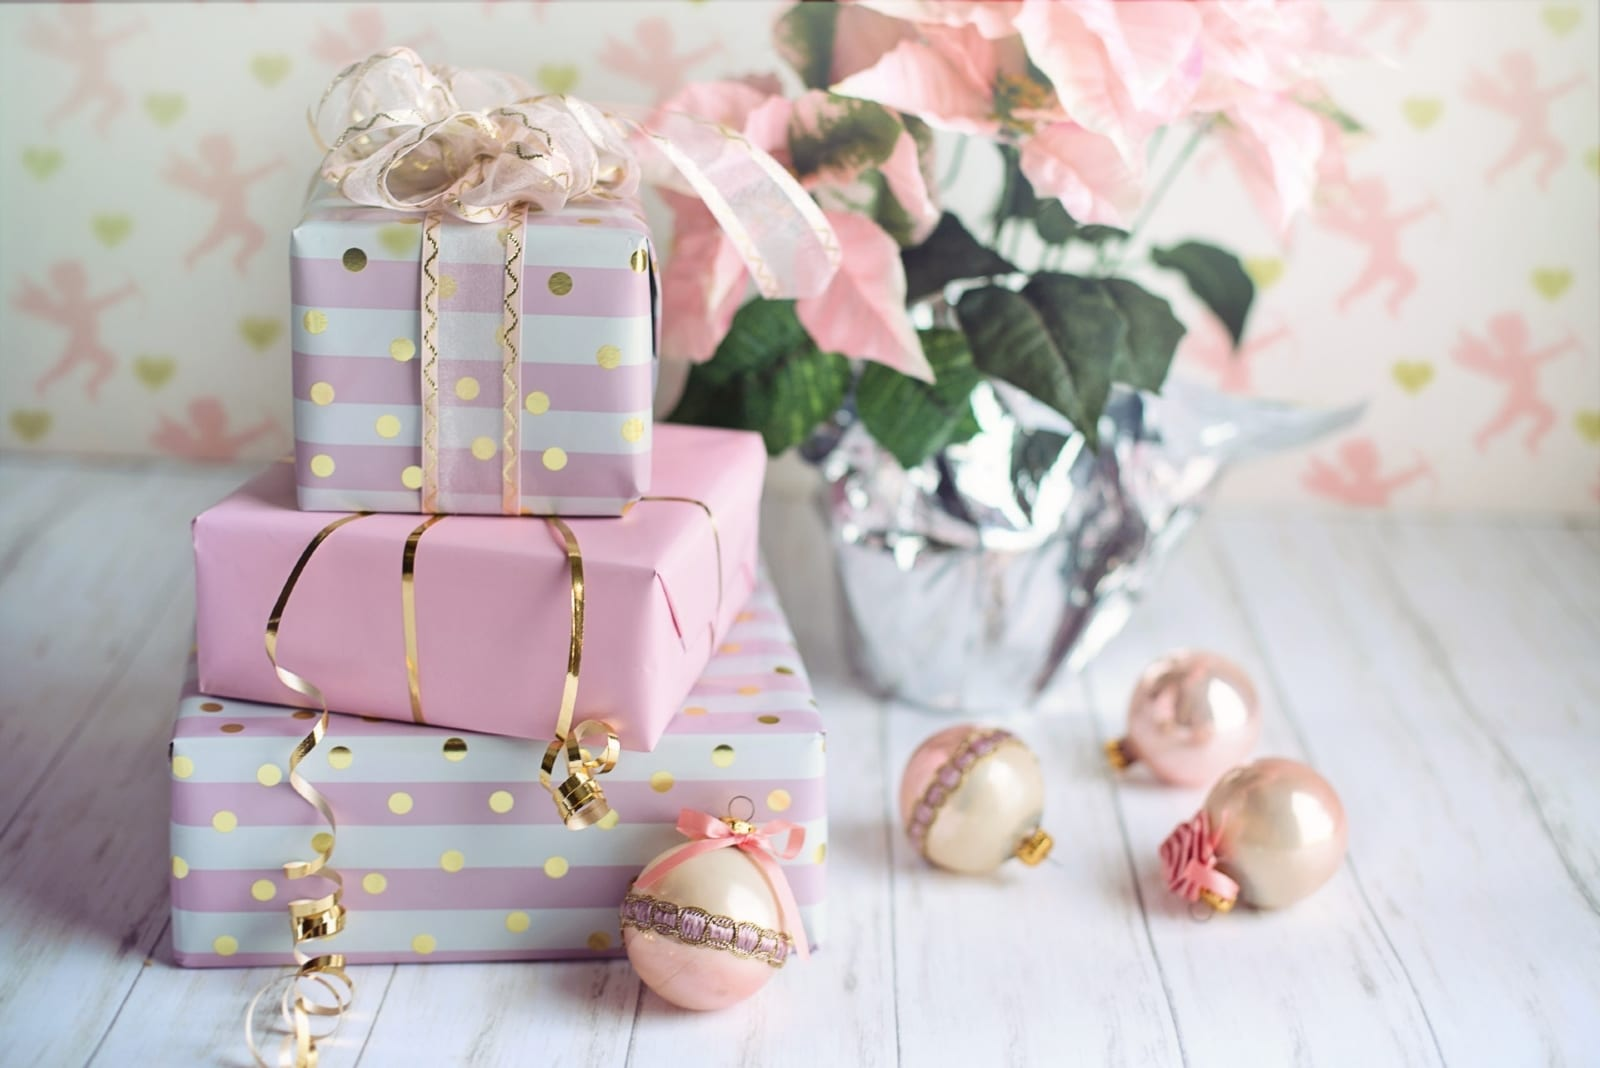 christmas presents on wooden table near pink flowers